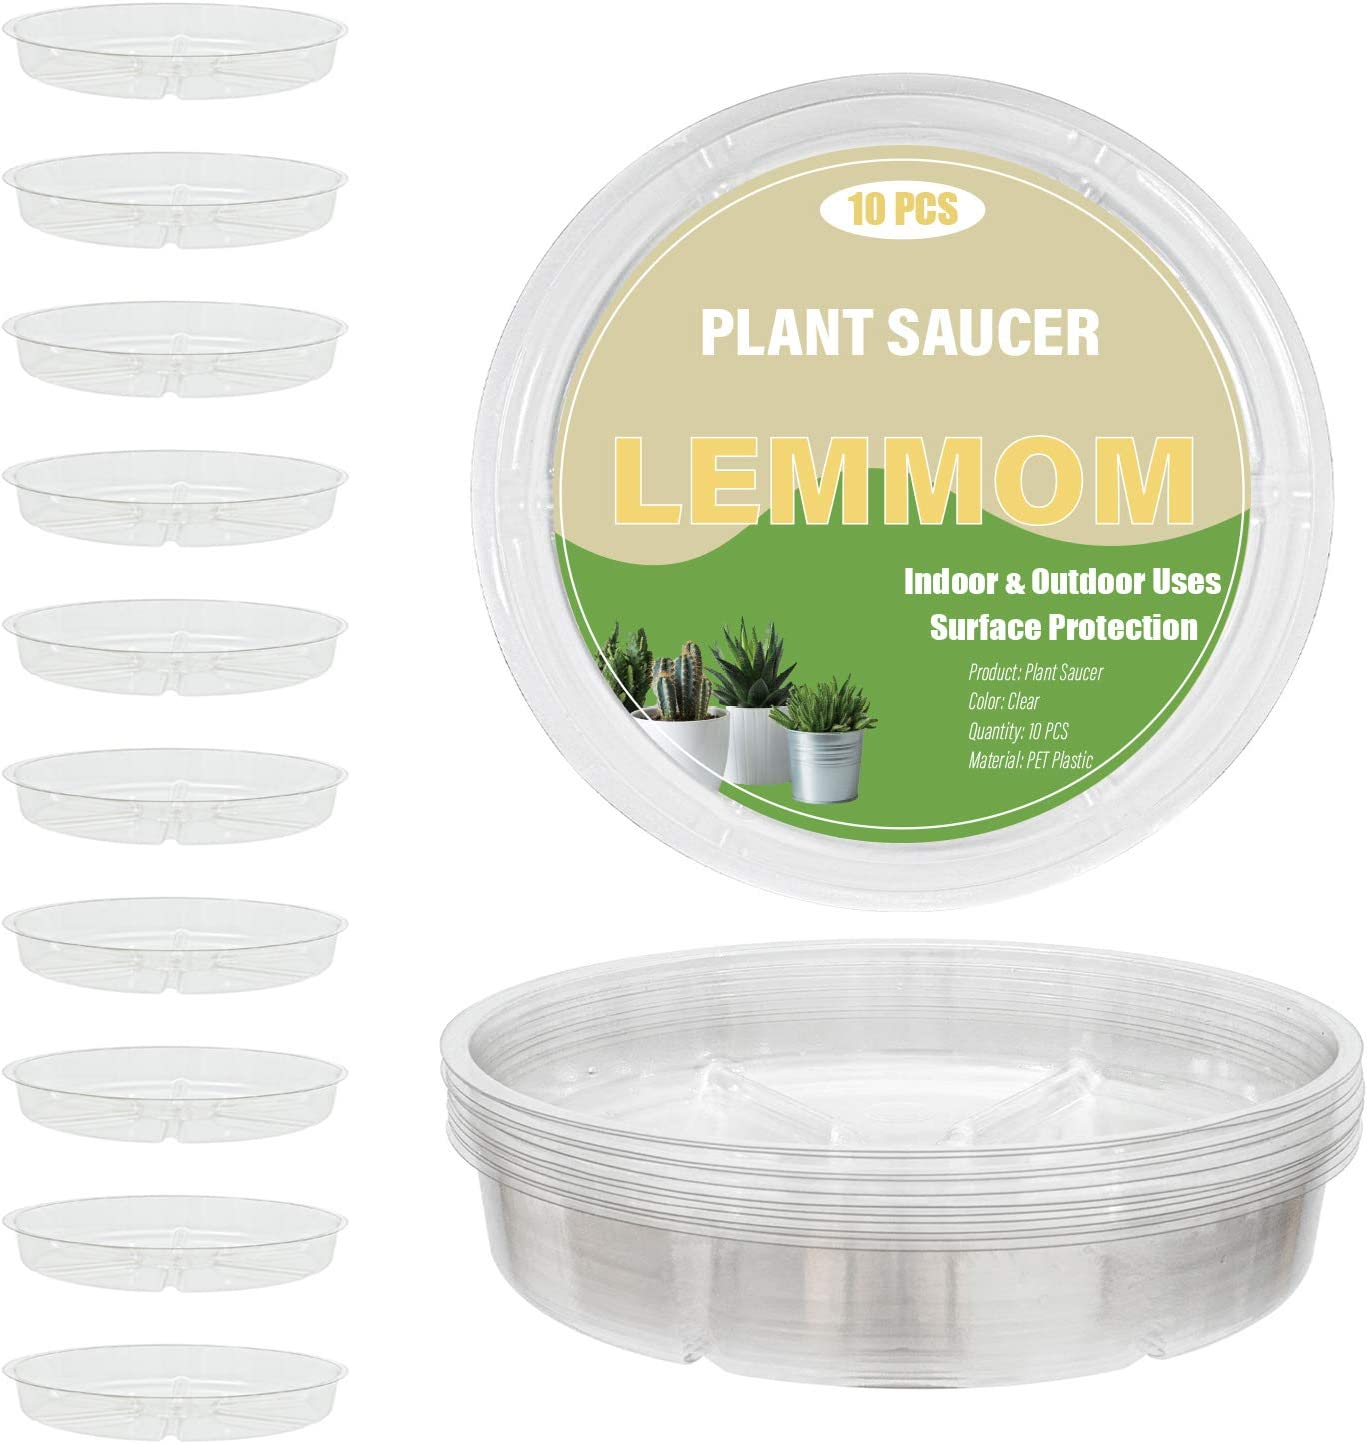 LEMMOM 10 Pieces 4-inch Clear Plastic Plant Saucer Indoor & Outdoor Garden Drip Tray for Pots (4'')